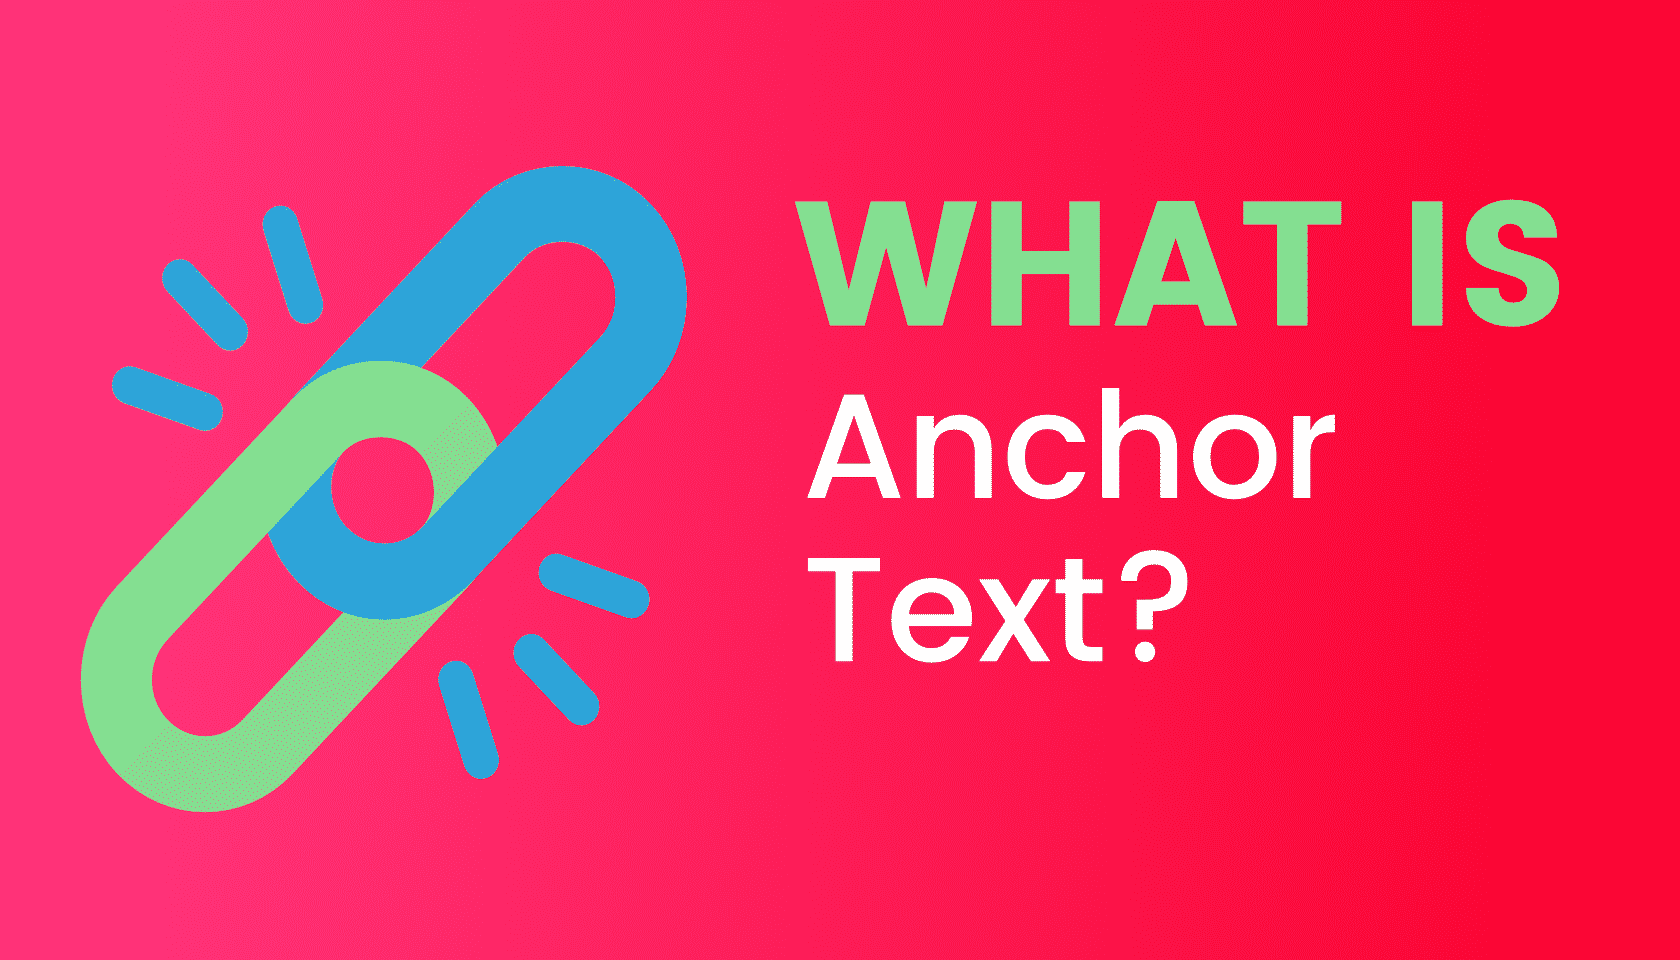 What is: Anchor Text?